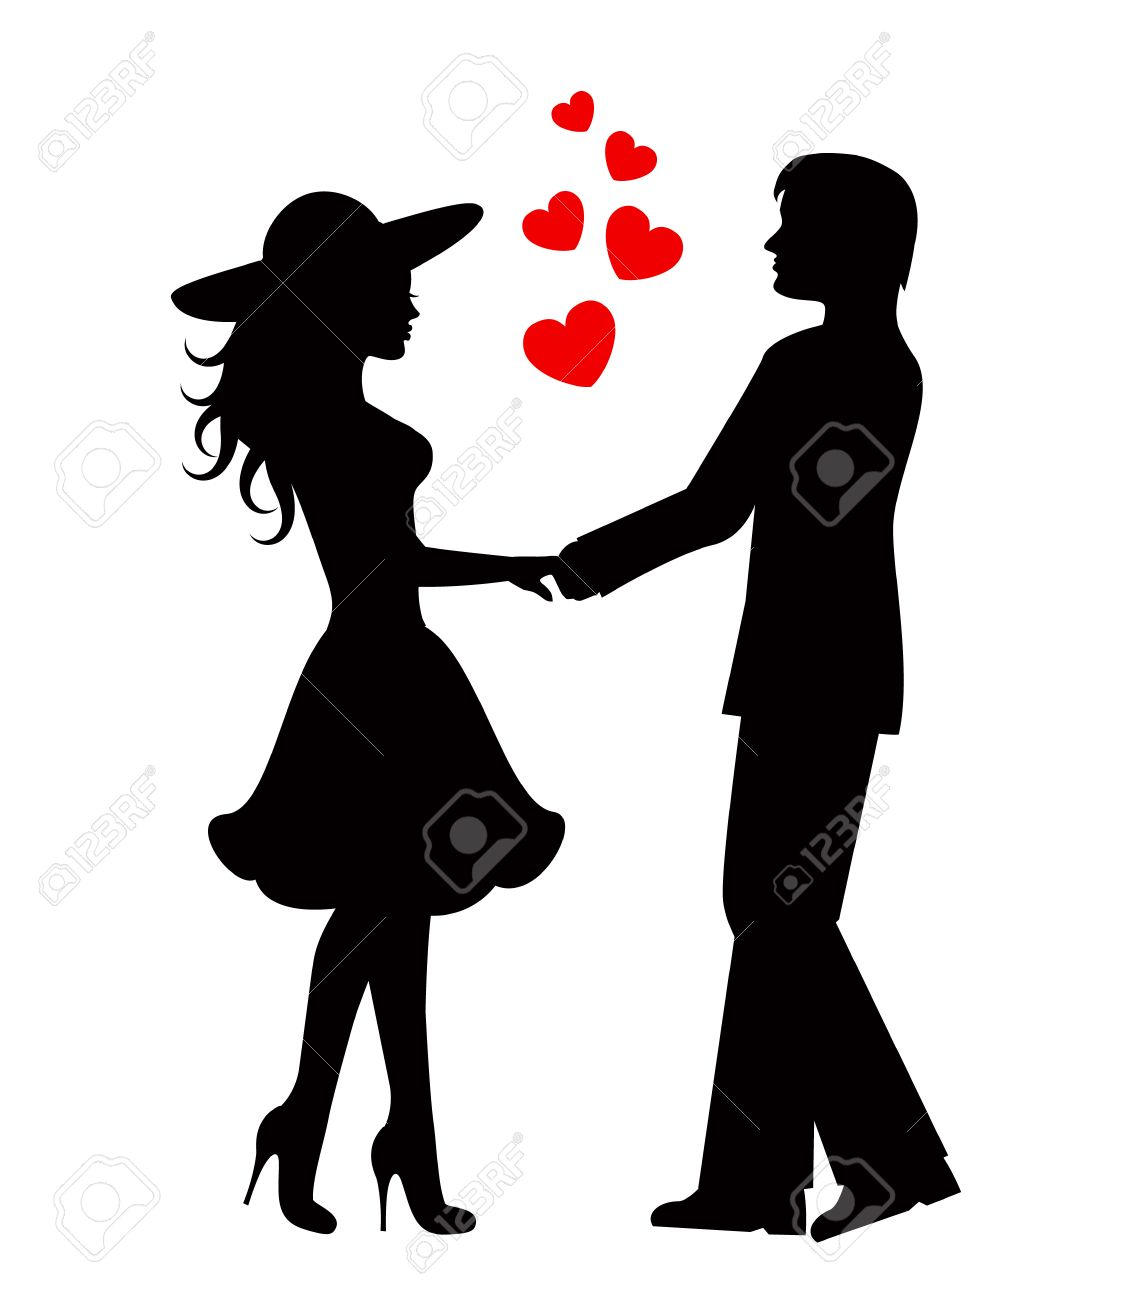 Silhouettes of loving couple Black against white background.